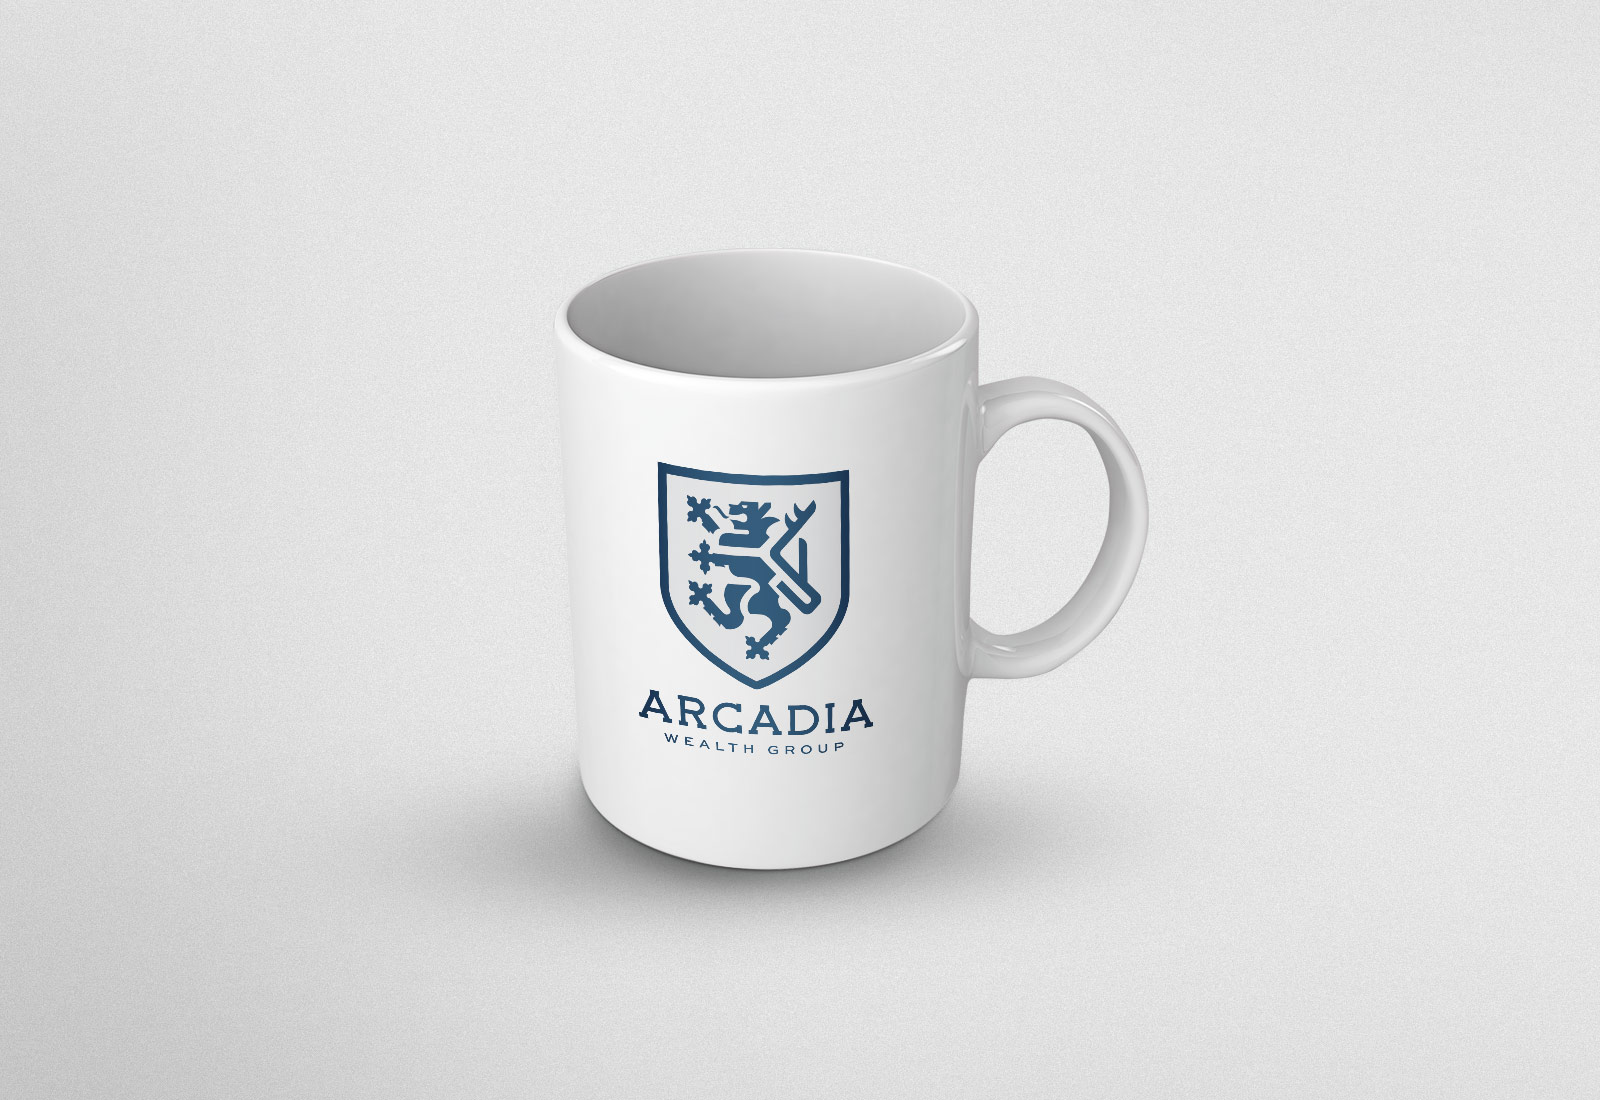 Arcadia Wealth Group Mug